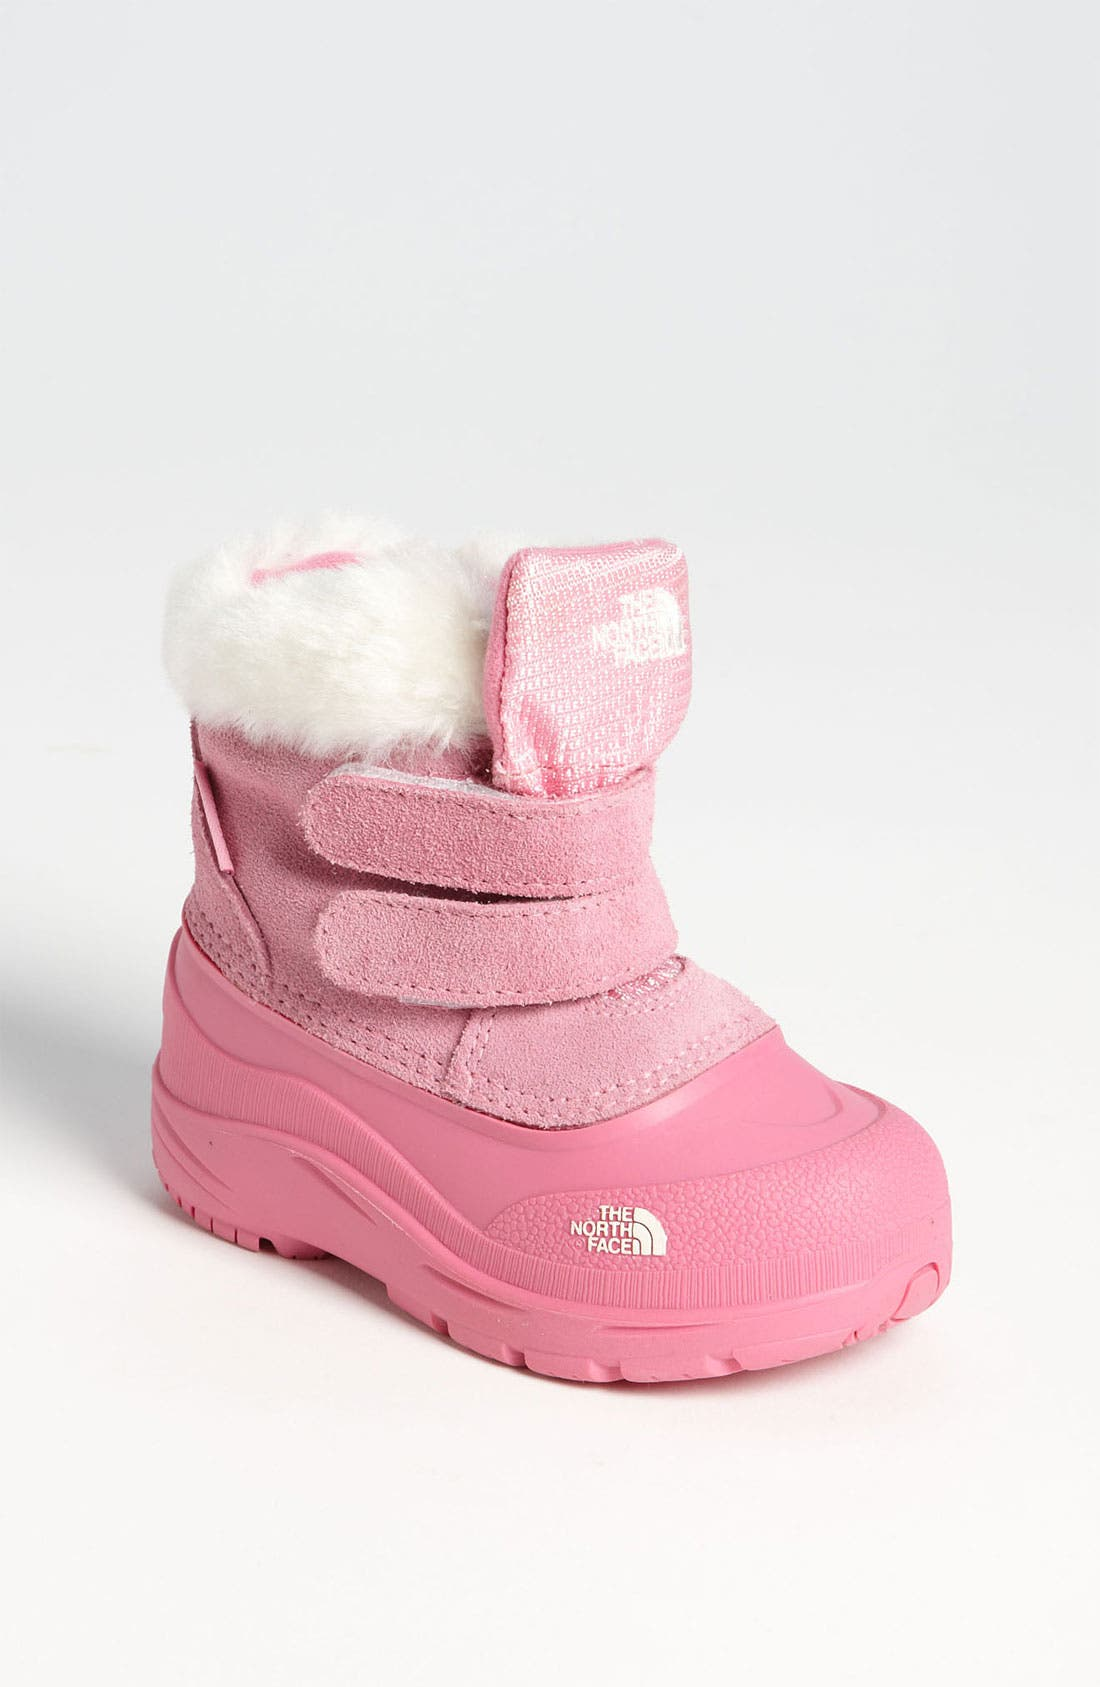 Alternate Image 1 Selected - The North Face 'McMurdo' Boot (Walker & Toddler)